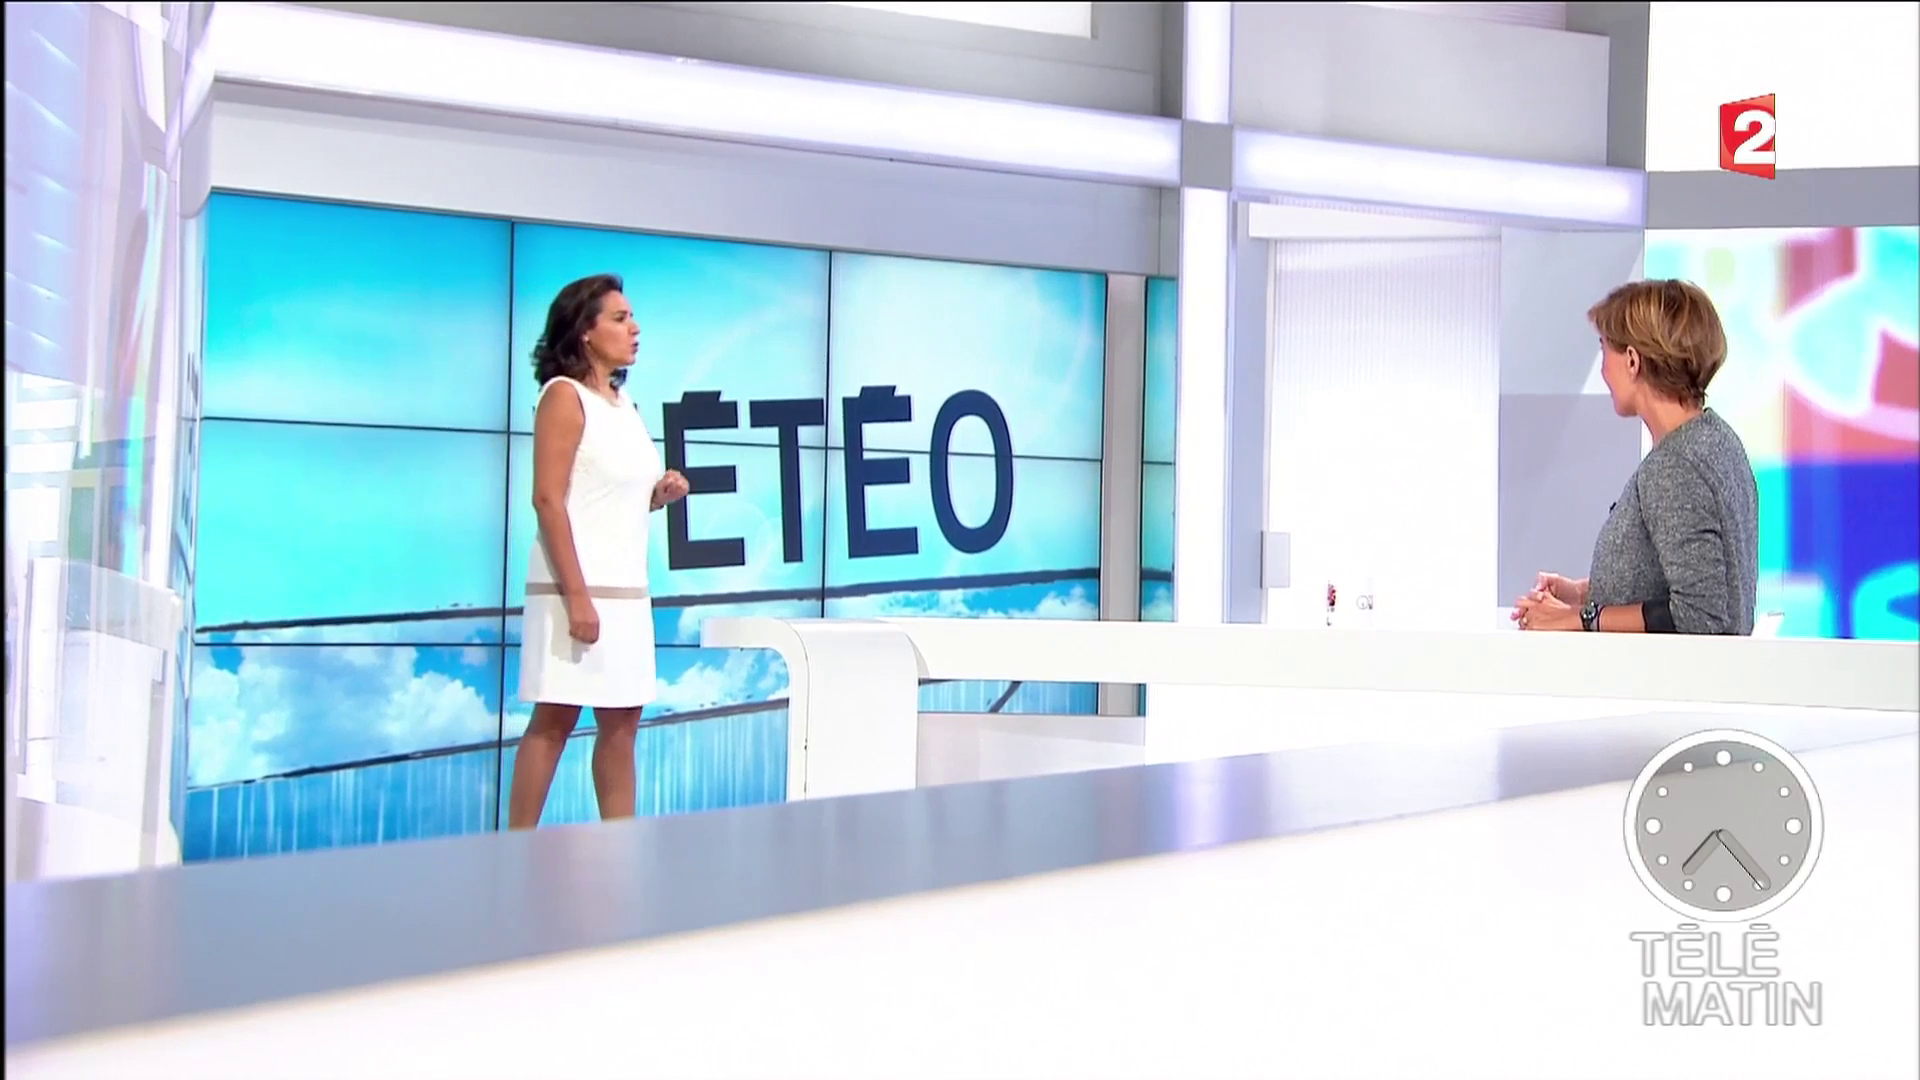 patriciacharbonnier04.2015_08_10_meteotelematinFRANCE2